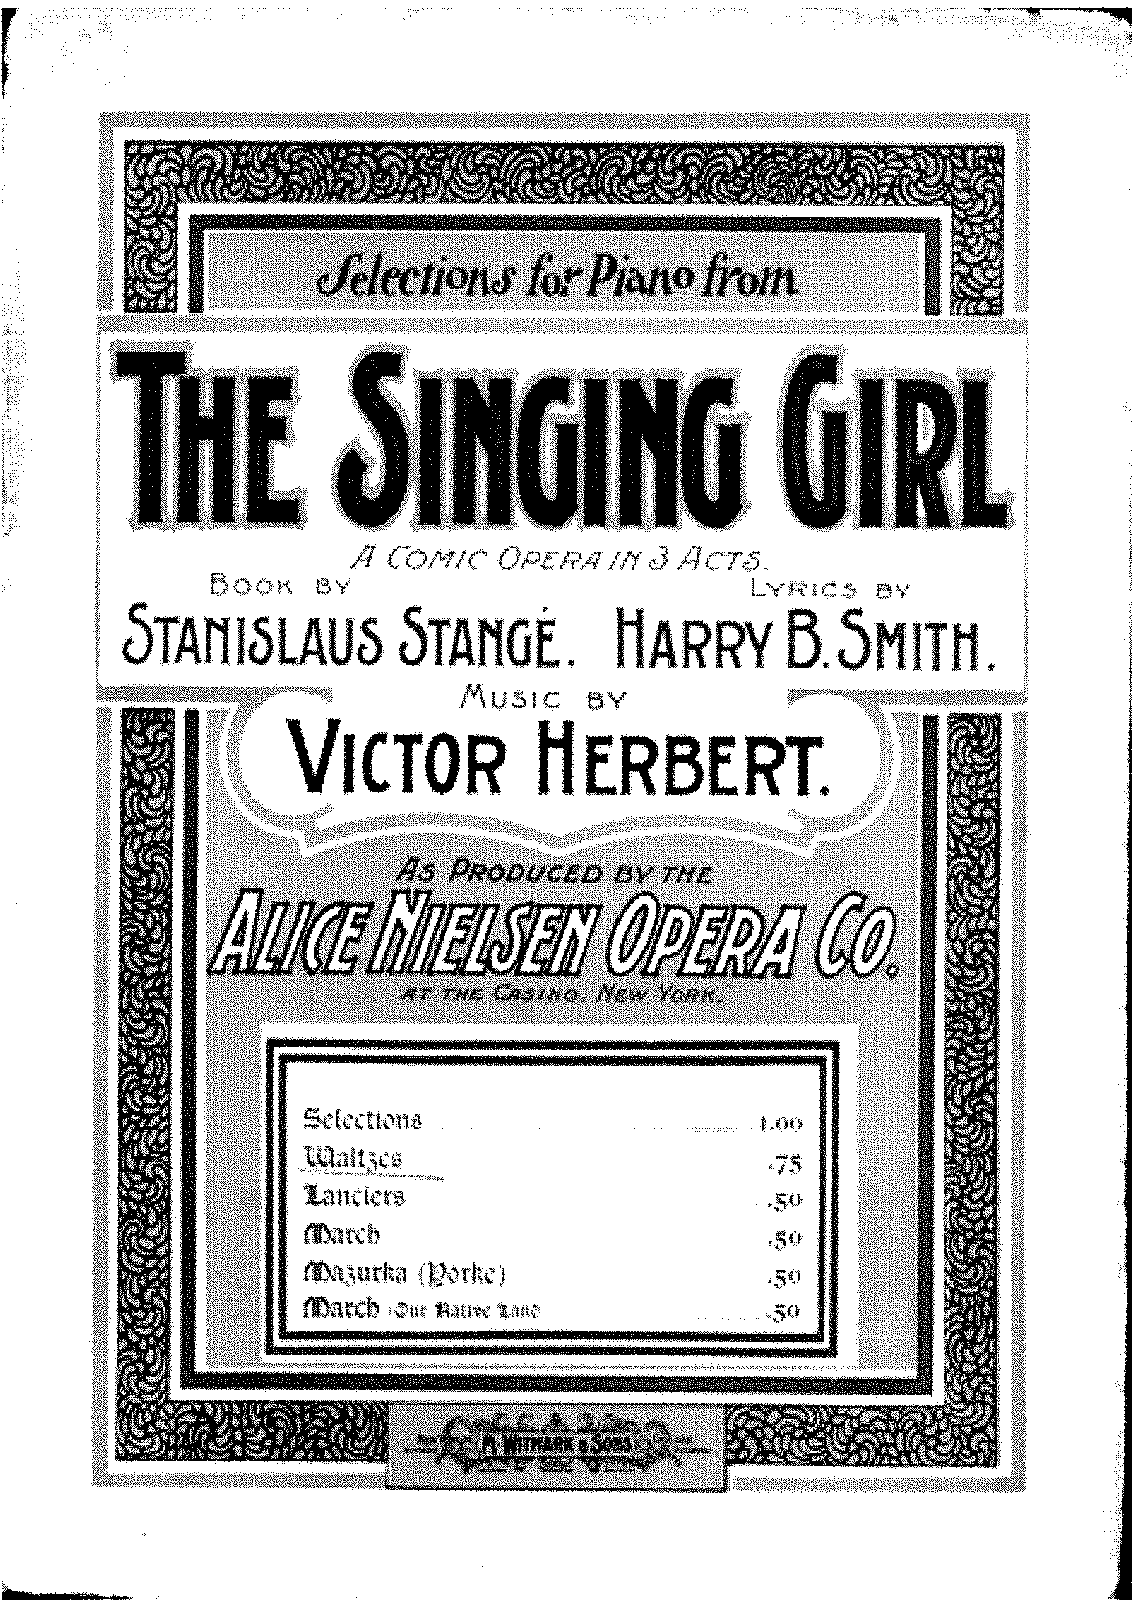 Herbert - The Singing Girl 1 (Waltzes).pdf